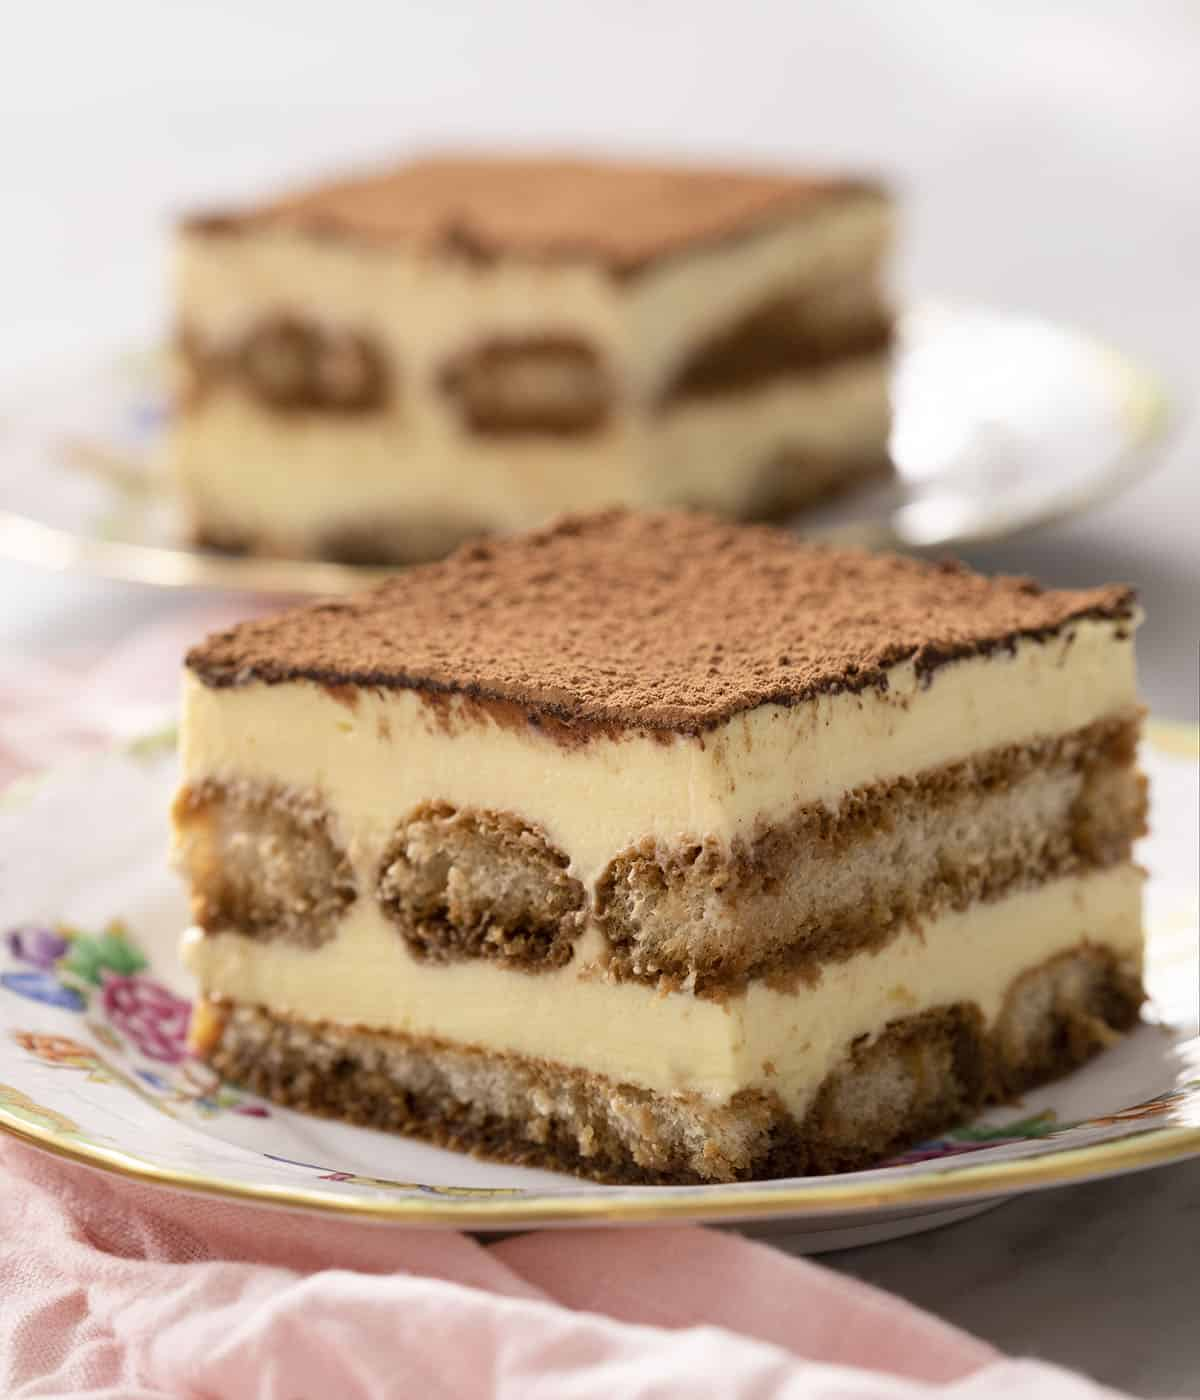 Two pieces of tiramisu filled with ladyfingers soaked in espresso.